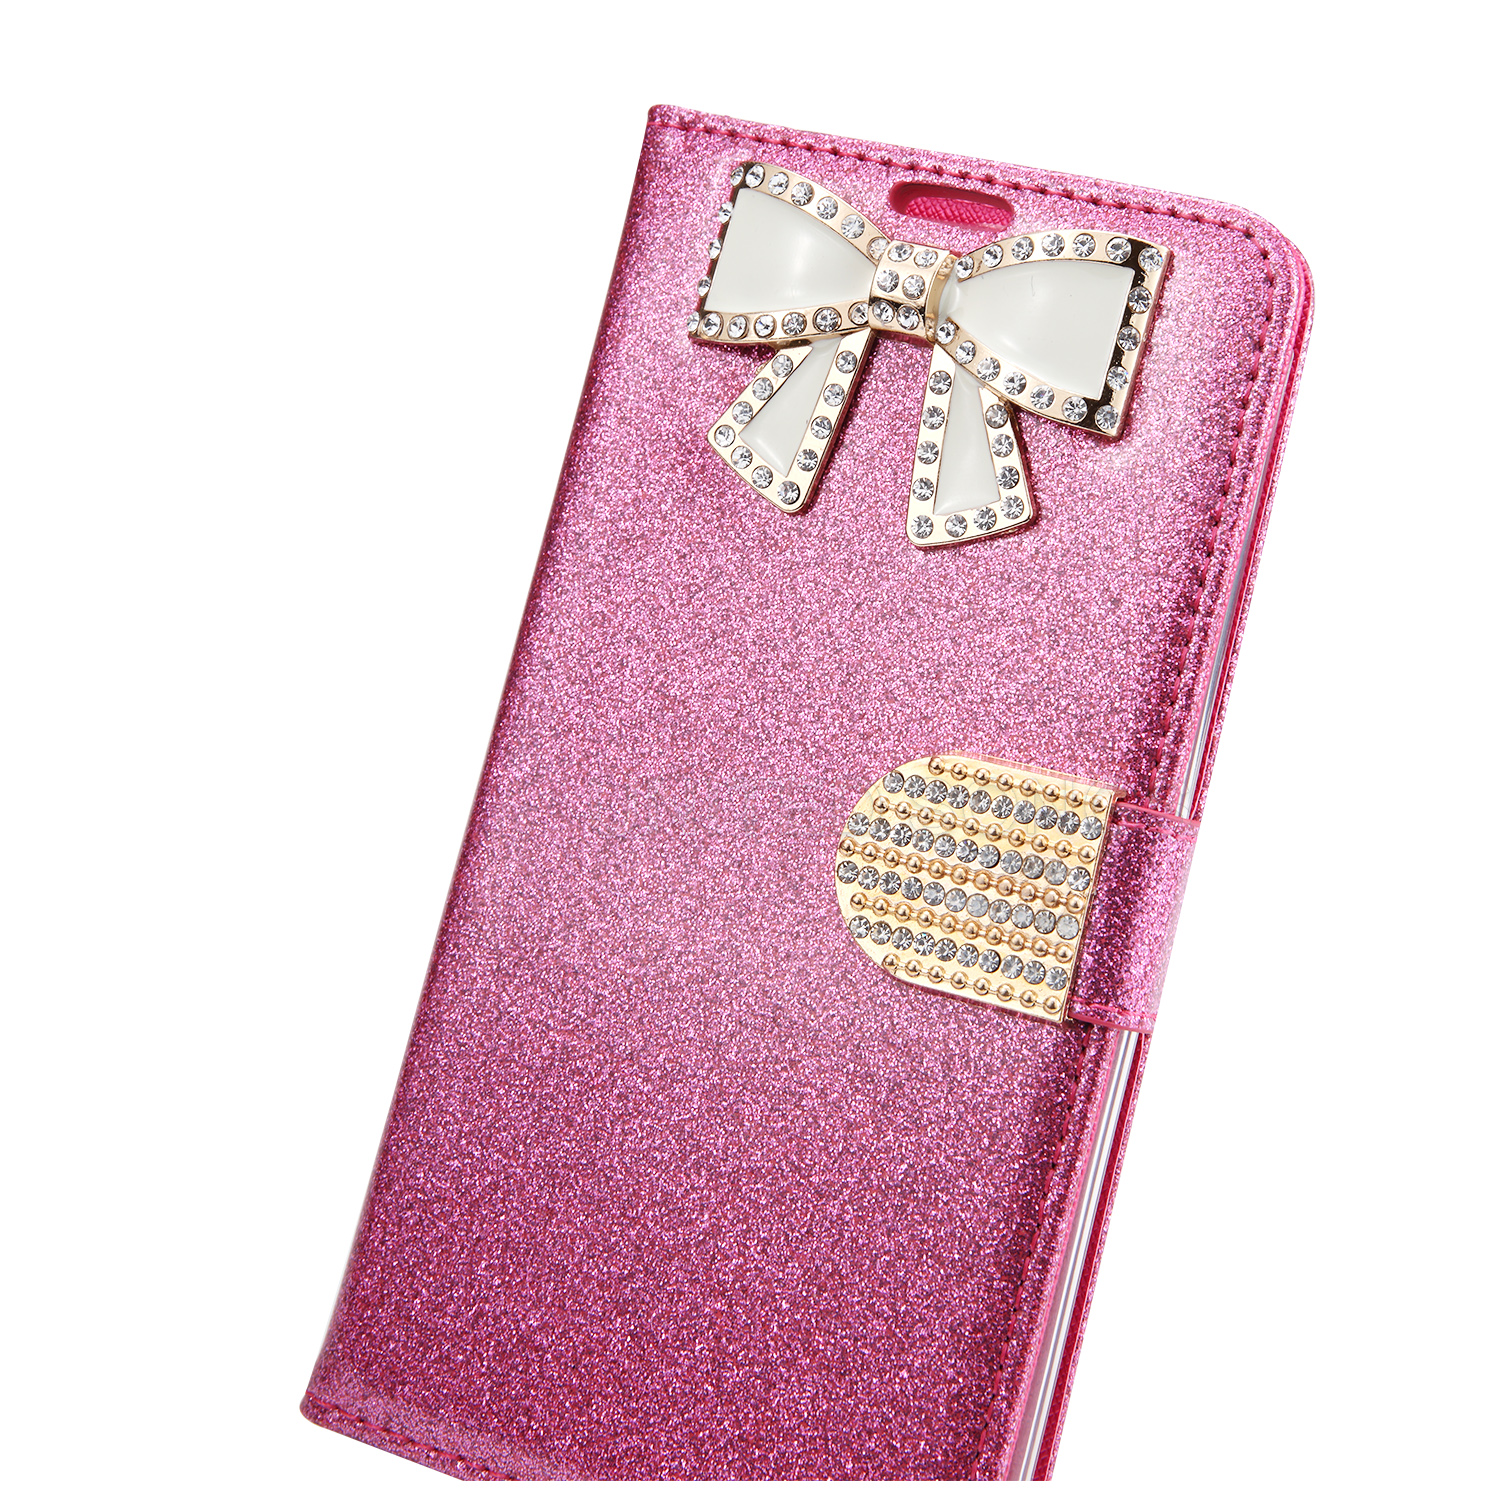 case on sparkle diamond itm cover snap mini for hard bling ipad glitter